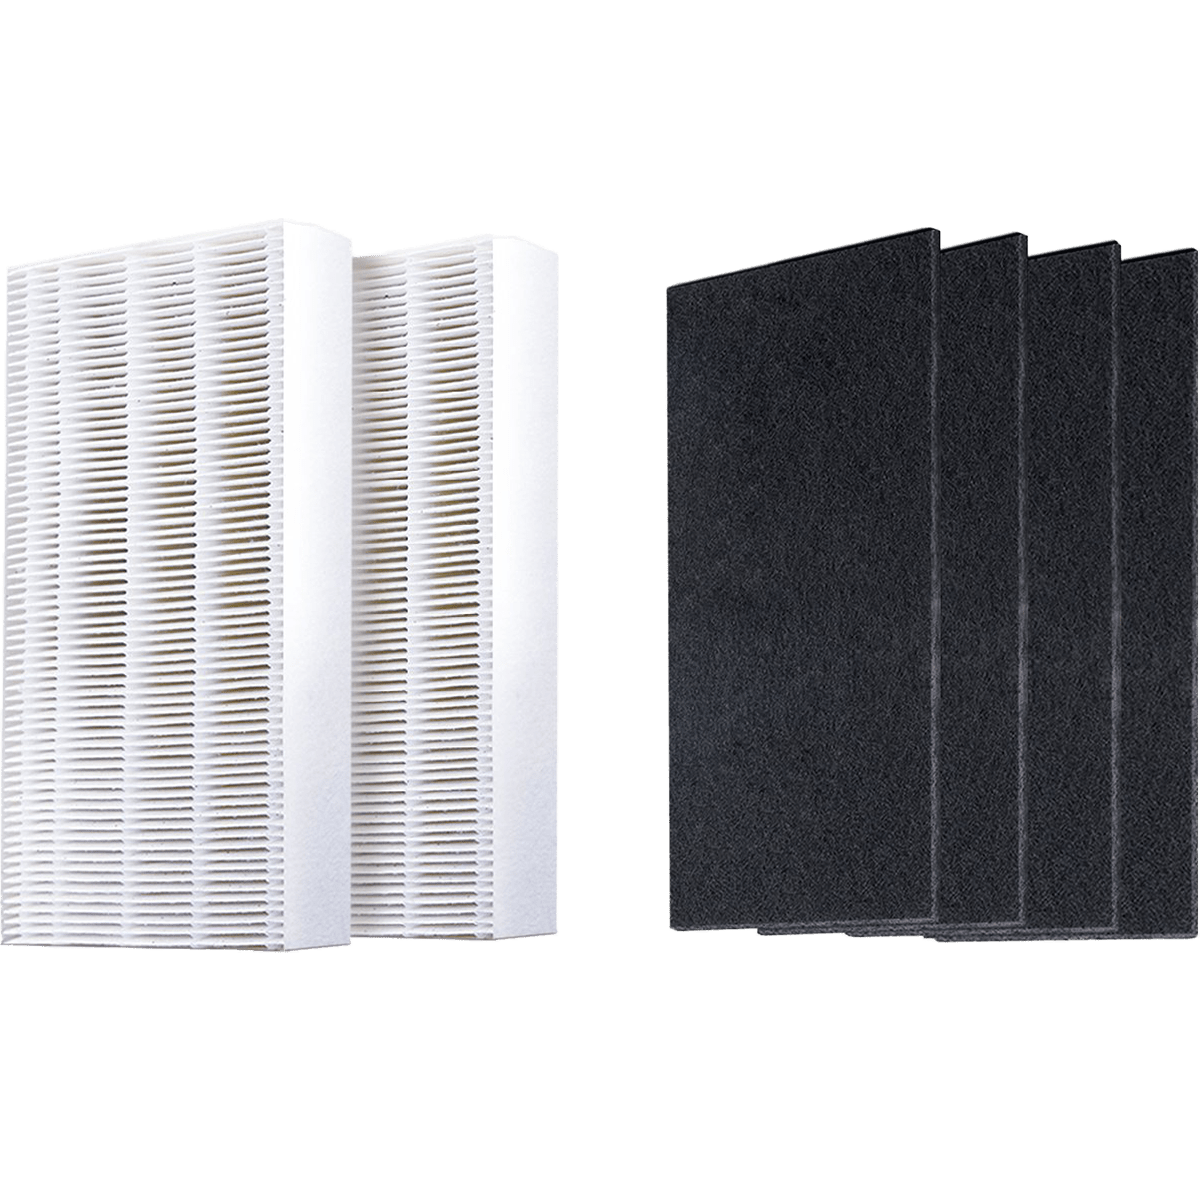 Coway Mighty Tower Air Purifier Replacement Filter Set (AP-1216L-FP) co6383